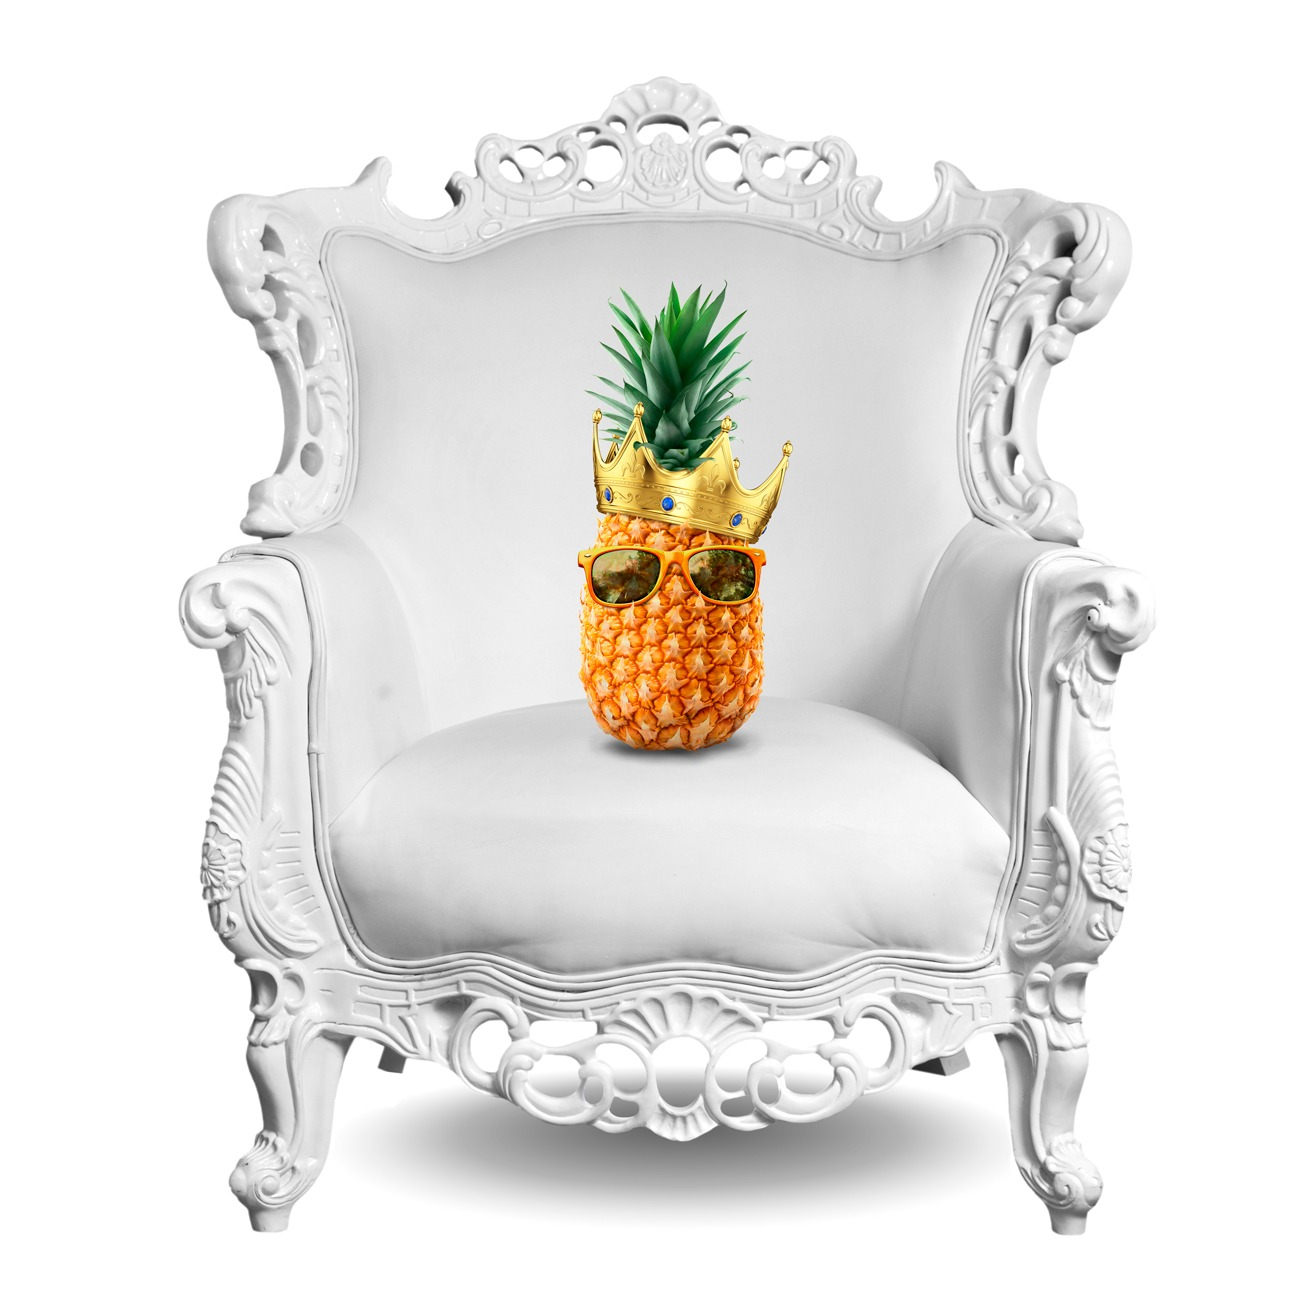 A pinapple with shades and a crown dits on a fancy white chair